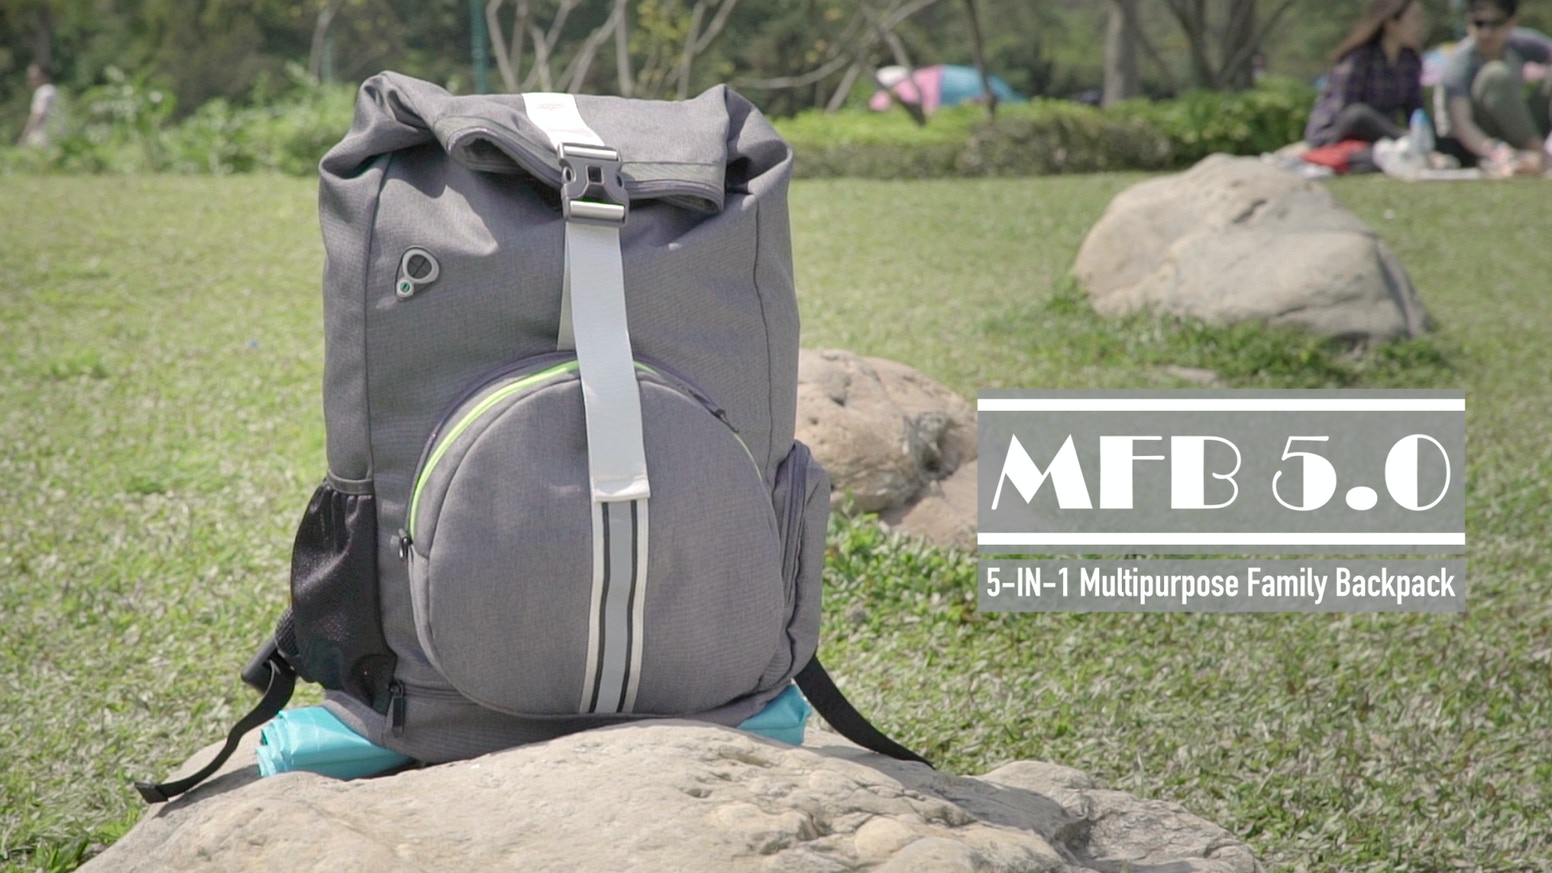 MFB 5.0 / 5-IN-1 MULTIPURPOSE FAMILY BACKPACK